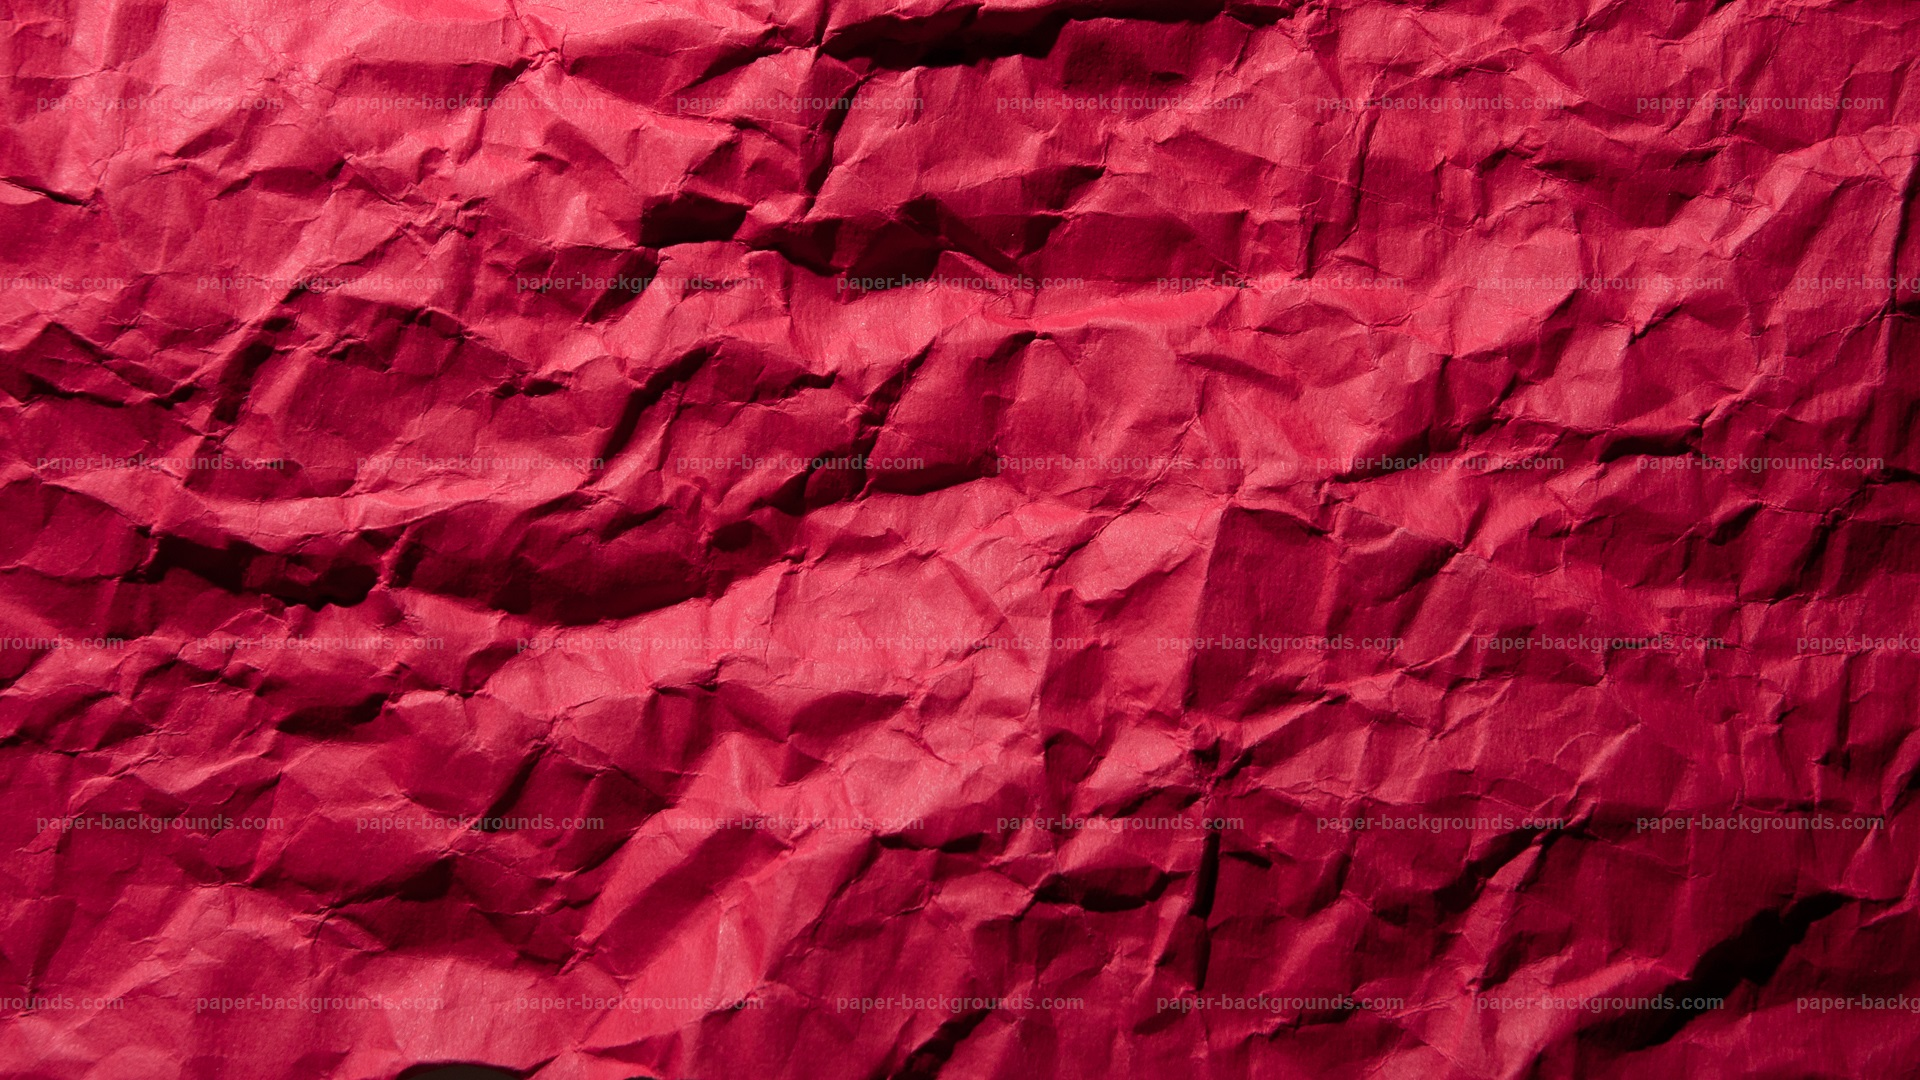 Crumpled Paper Texture Hd Wallpaper